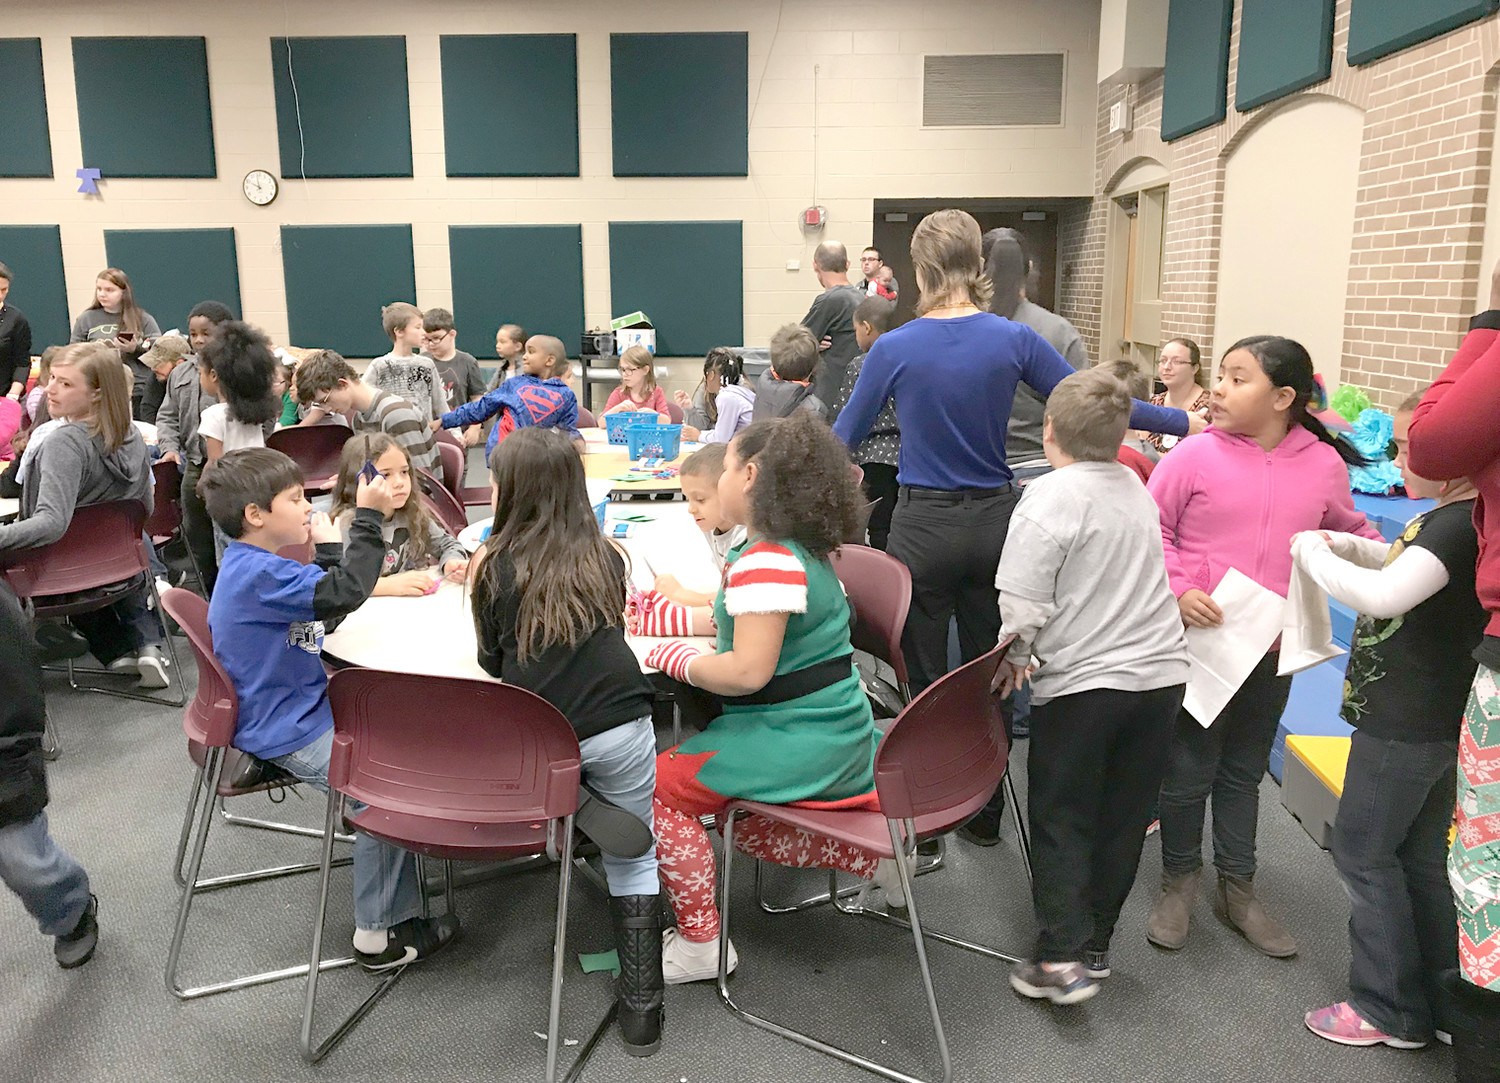 A LARGE GROUP of students turned out to make holiday ornaments recently at Blythe-Bower Elementary School.